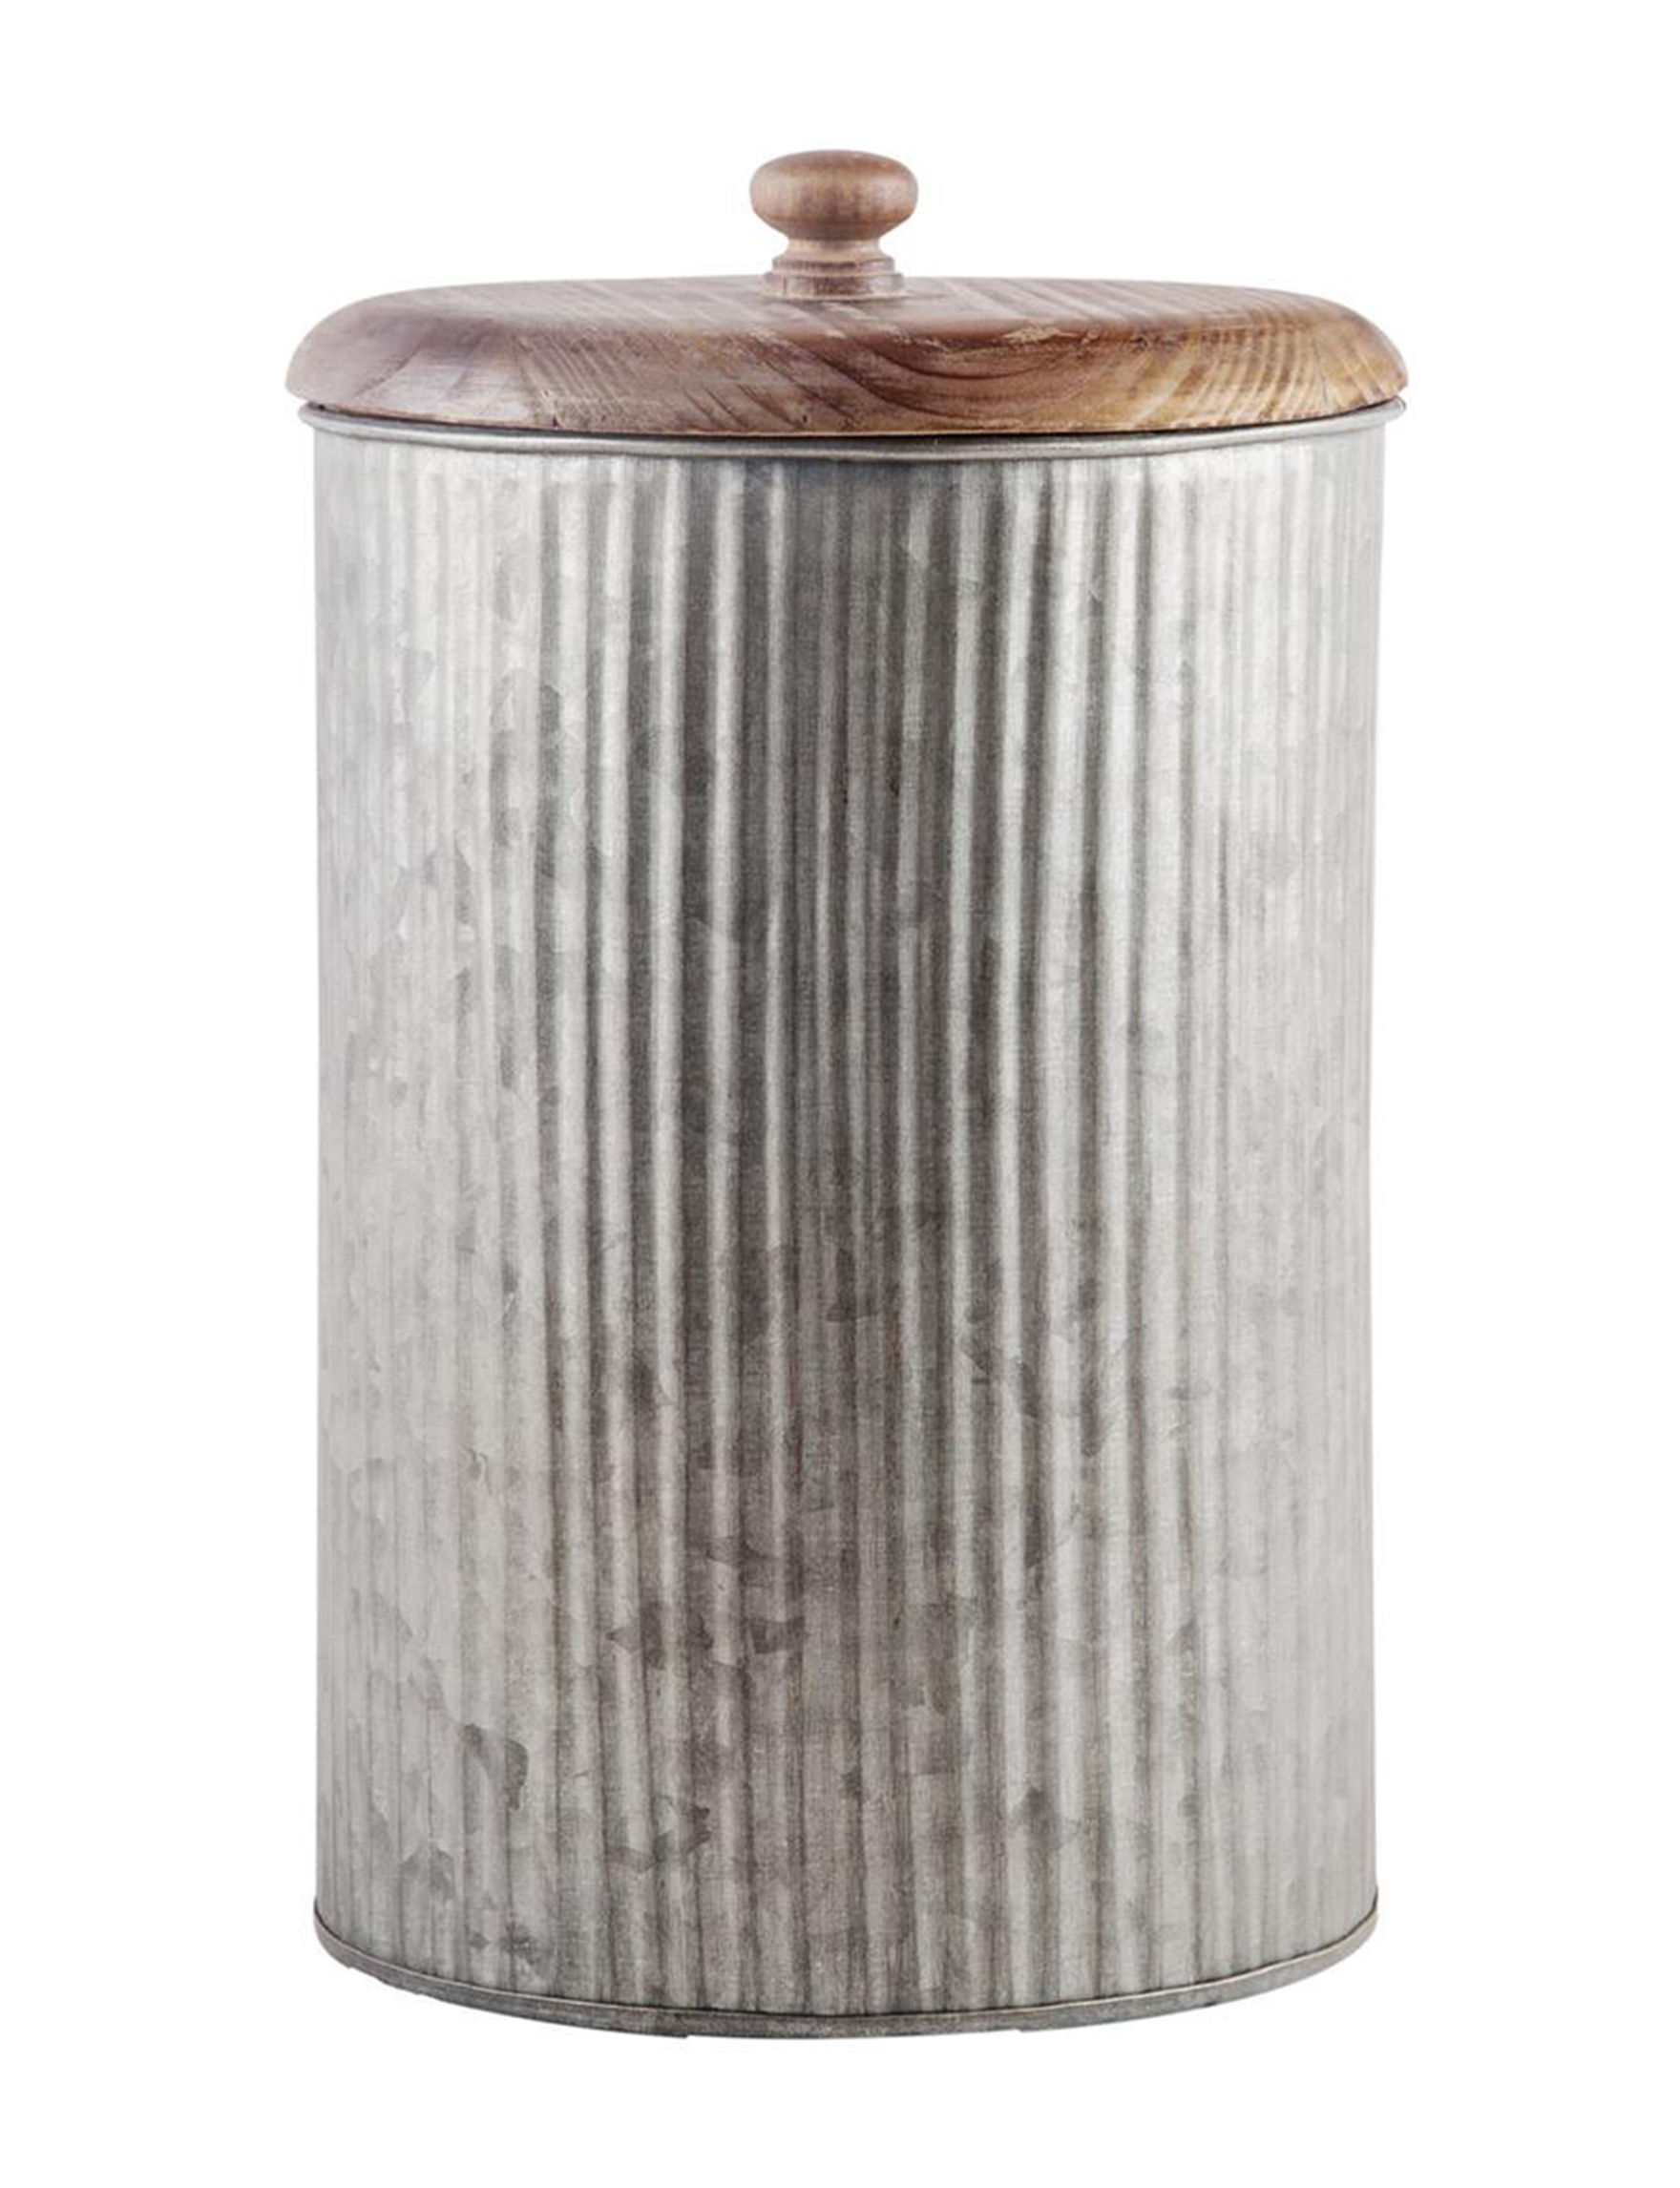 Home Essentials Galvanized Decorative Objects Home Accents